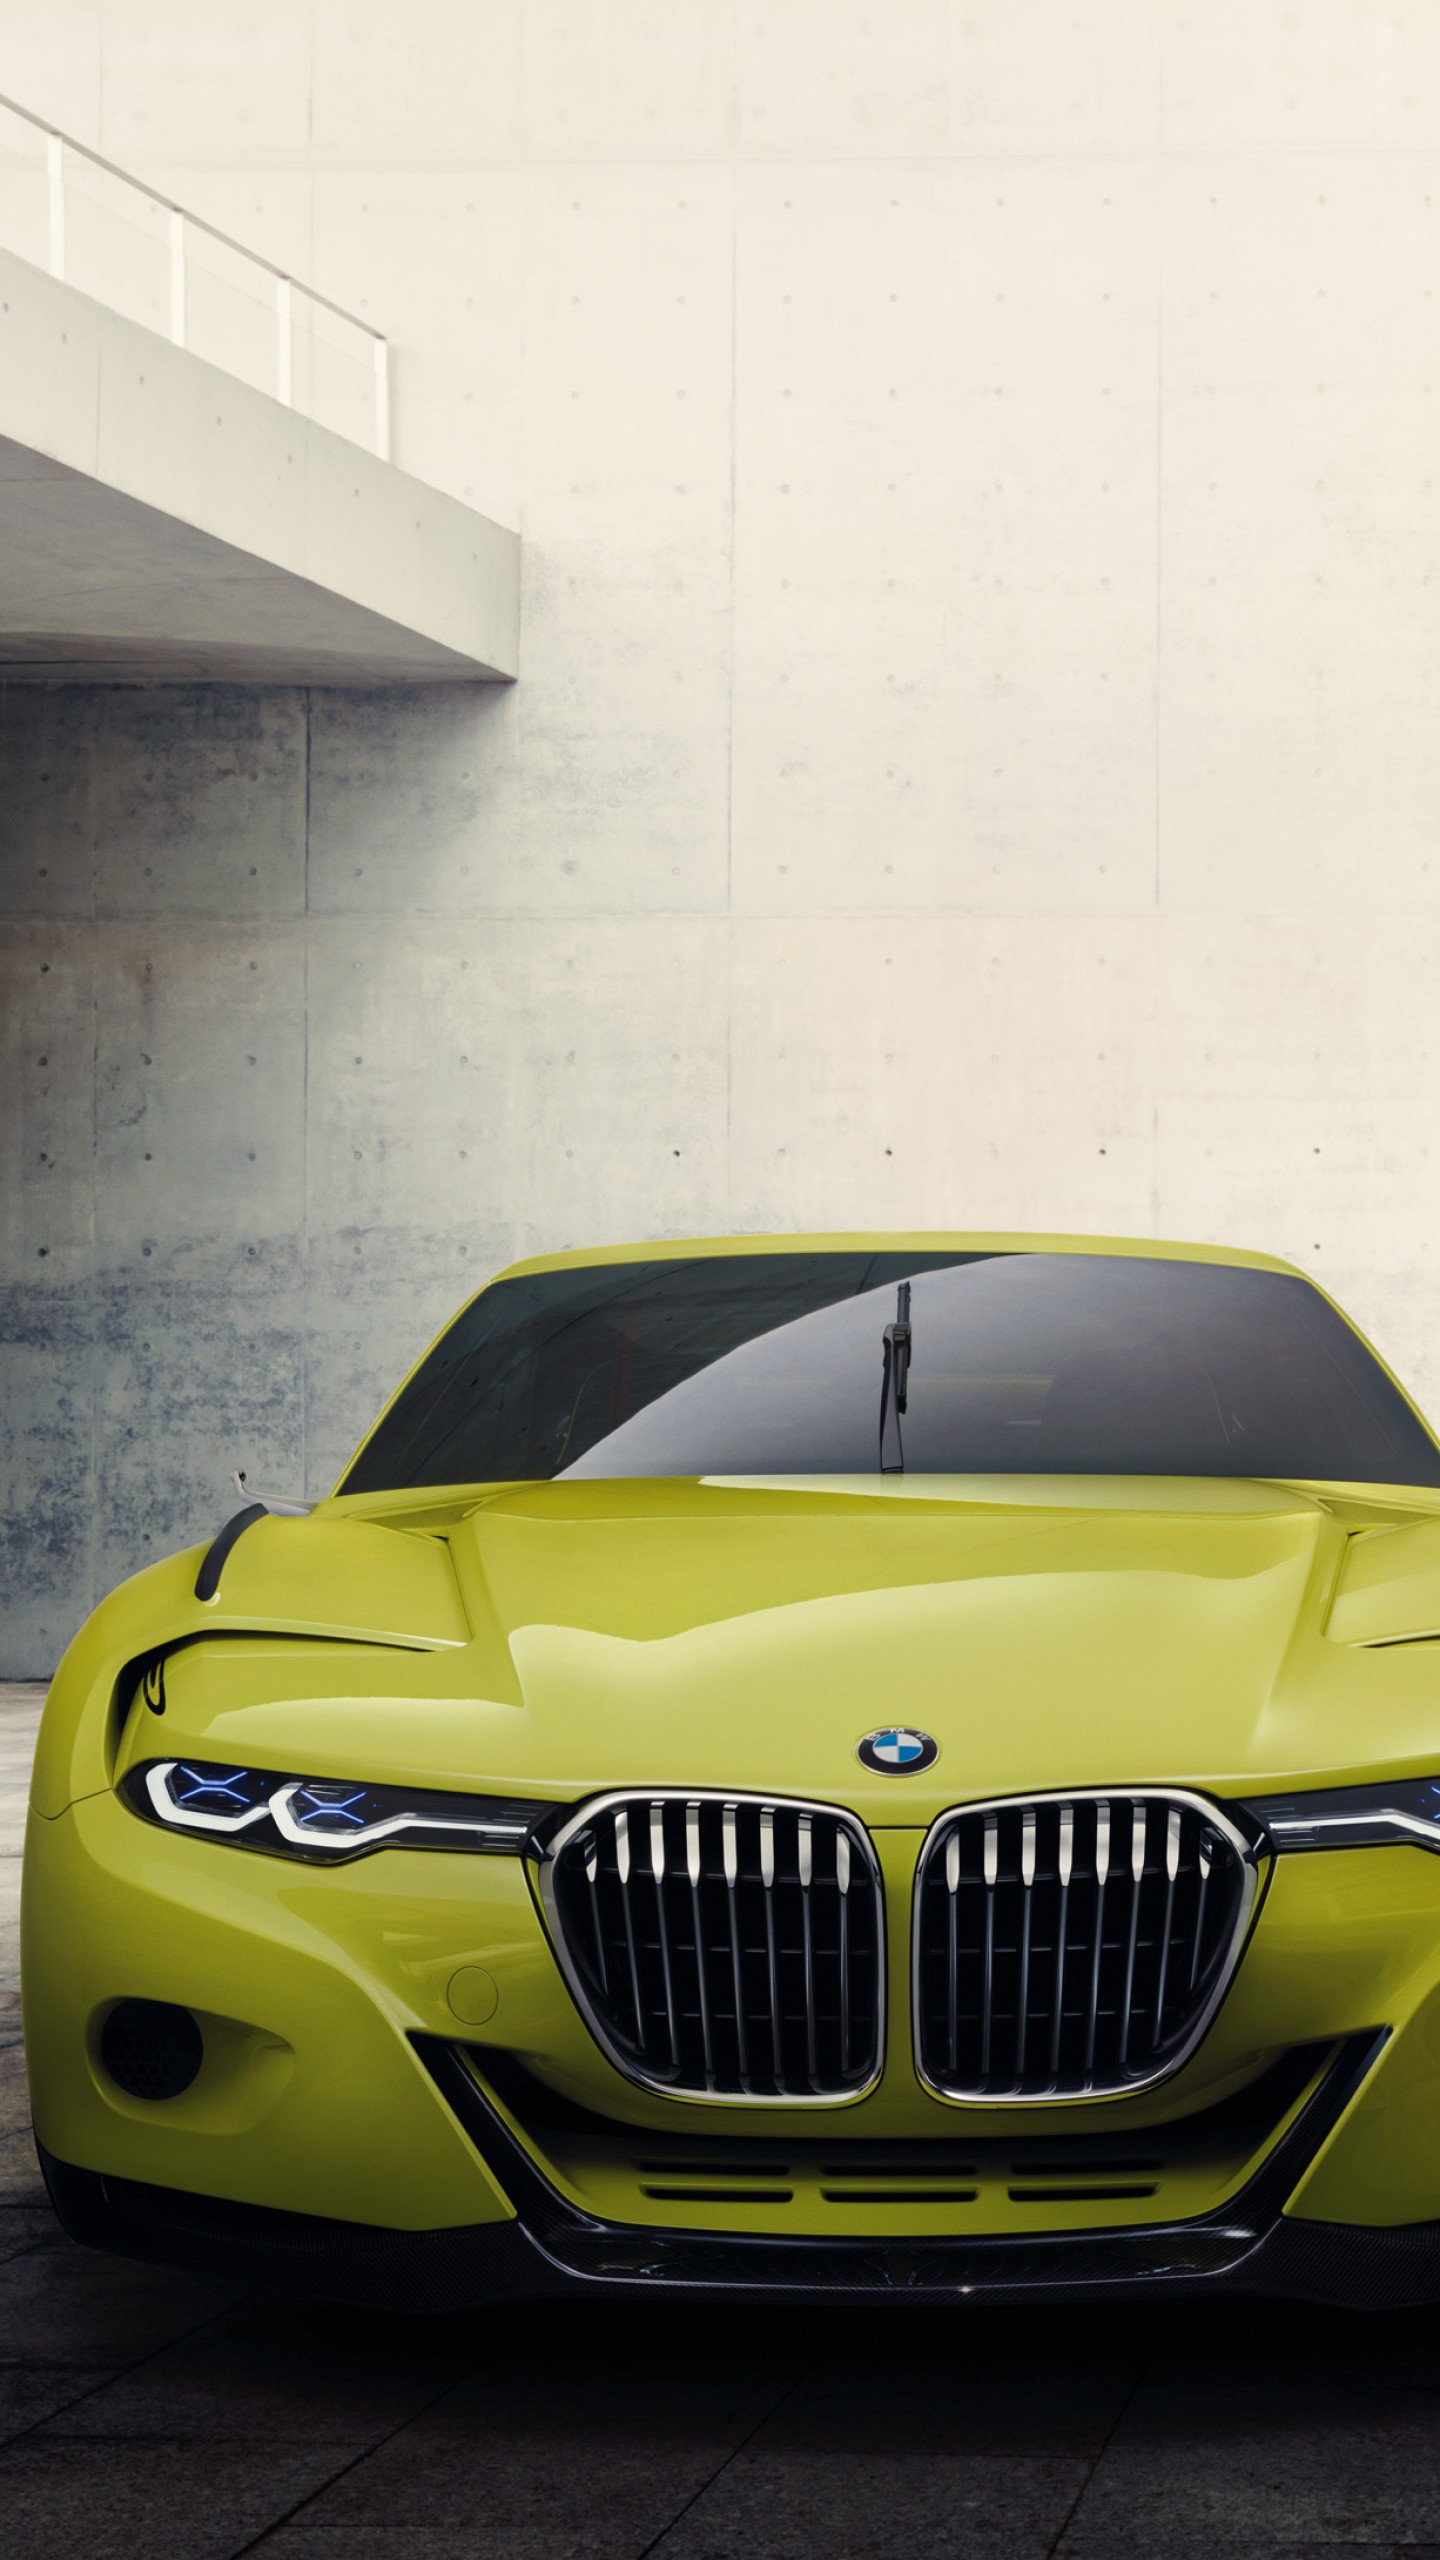 Car Background Wallpaper Hd Download Wallpaper Bmw 3 0 Csl Yellow Sports Car Bmw Xdrive